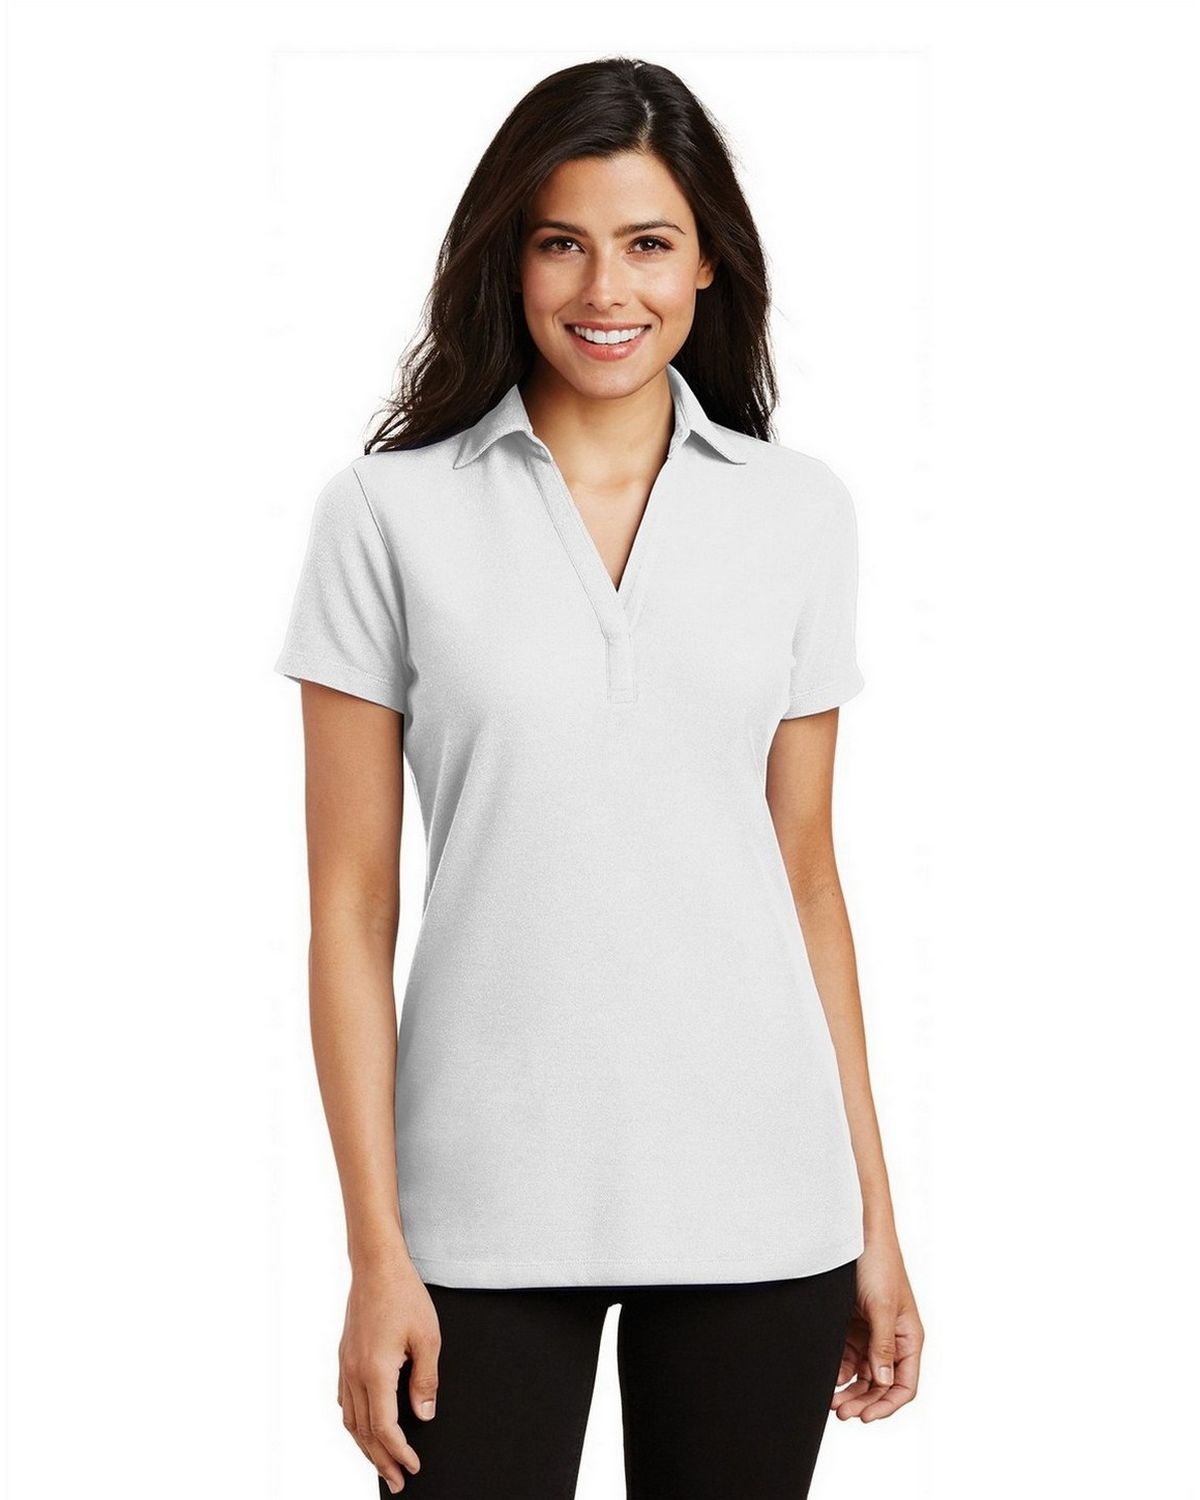 Port Authority L5001 Women's Silk Touch Y-Neck Polo - White - XS #silk